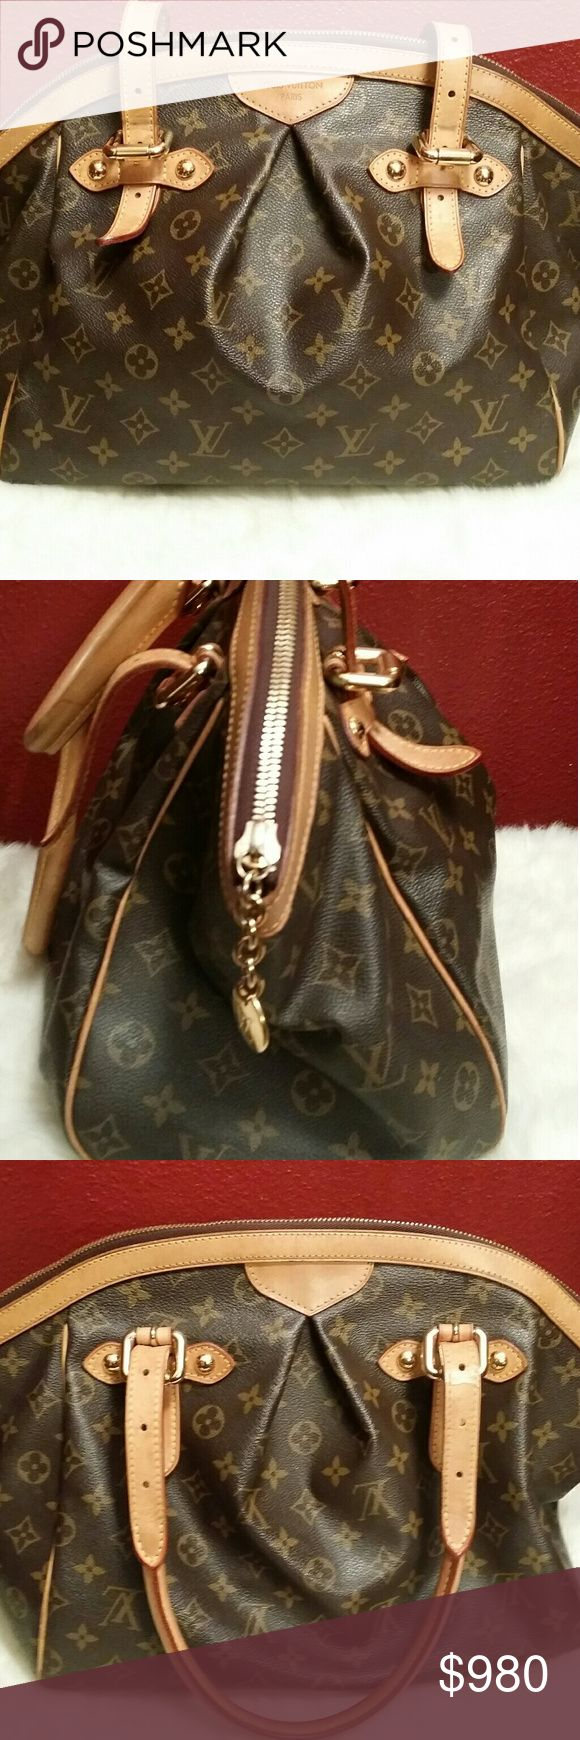 Louis  Vuitton  Tivoli GM Authentic preowned Louis Vuitton Monogram Tivoli in great condition honey patina no major flaws very well cared for. Made in USA. All popping in tact. Interior clean for the most part. Comes with dust bag. No box. No trades. Price is firm. NO TRADES! Louis Vuitton Bags Satchels